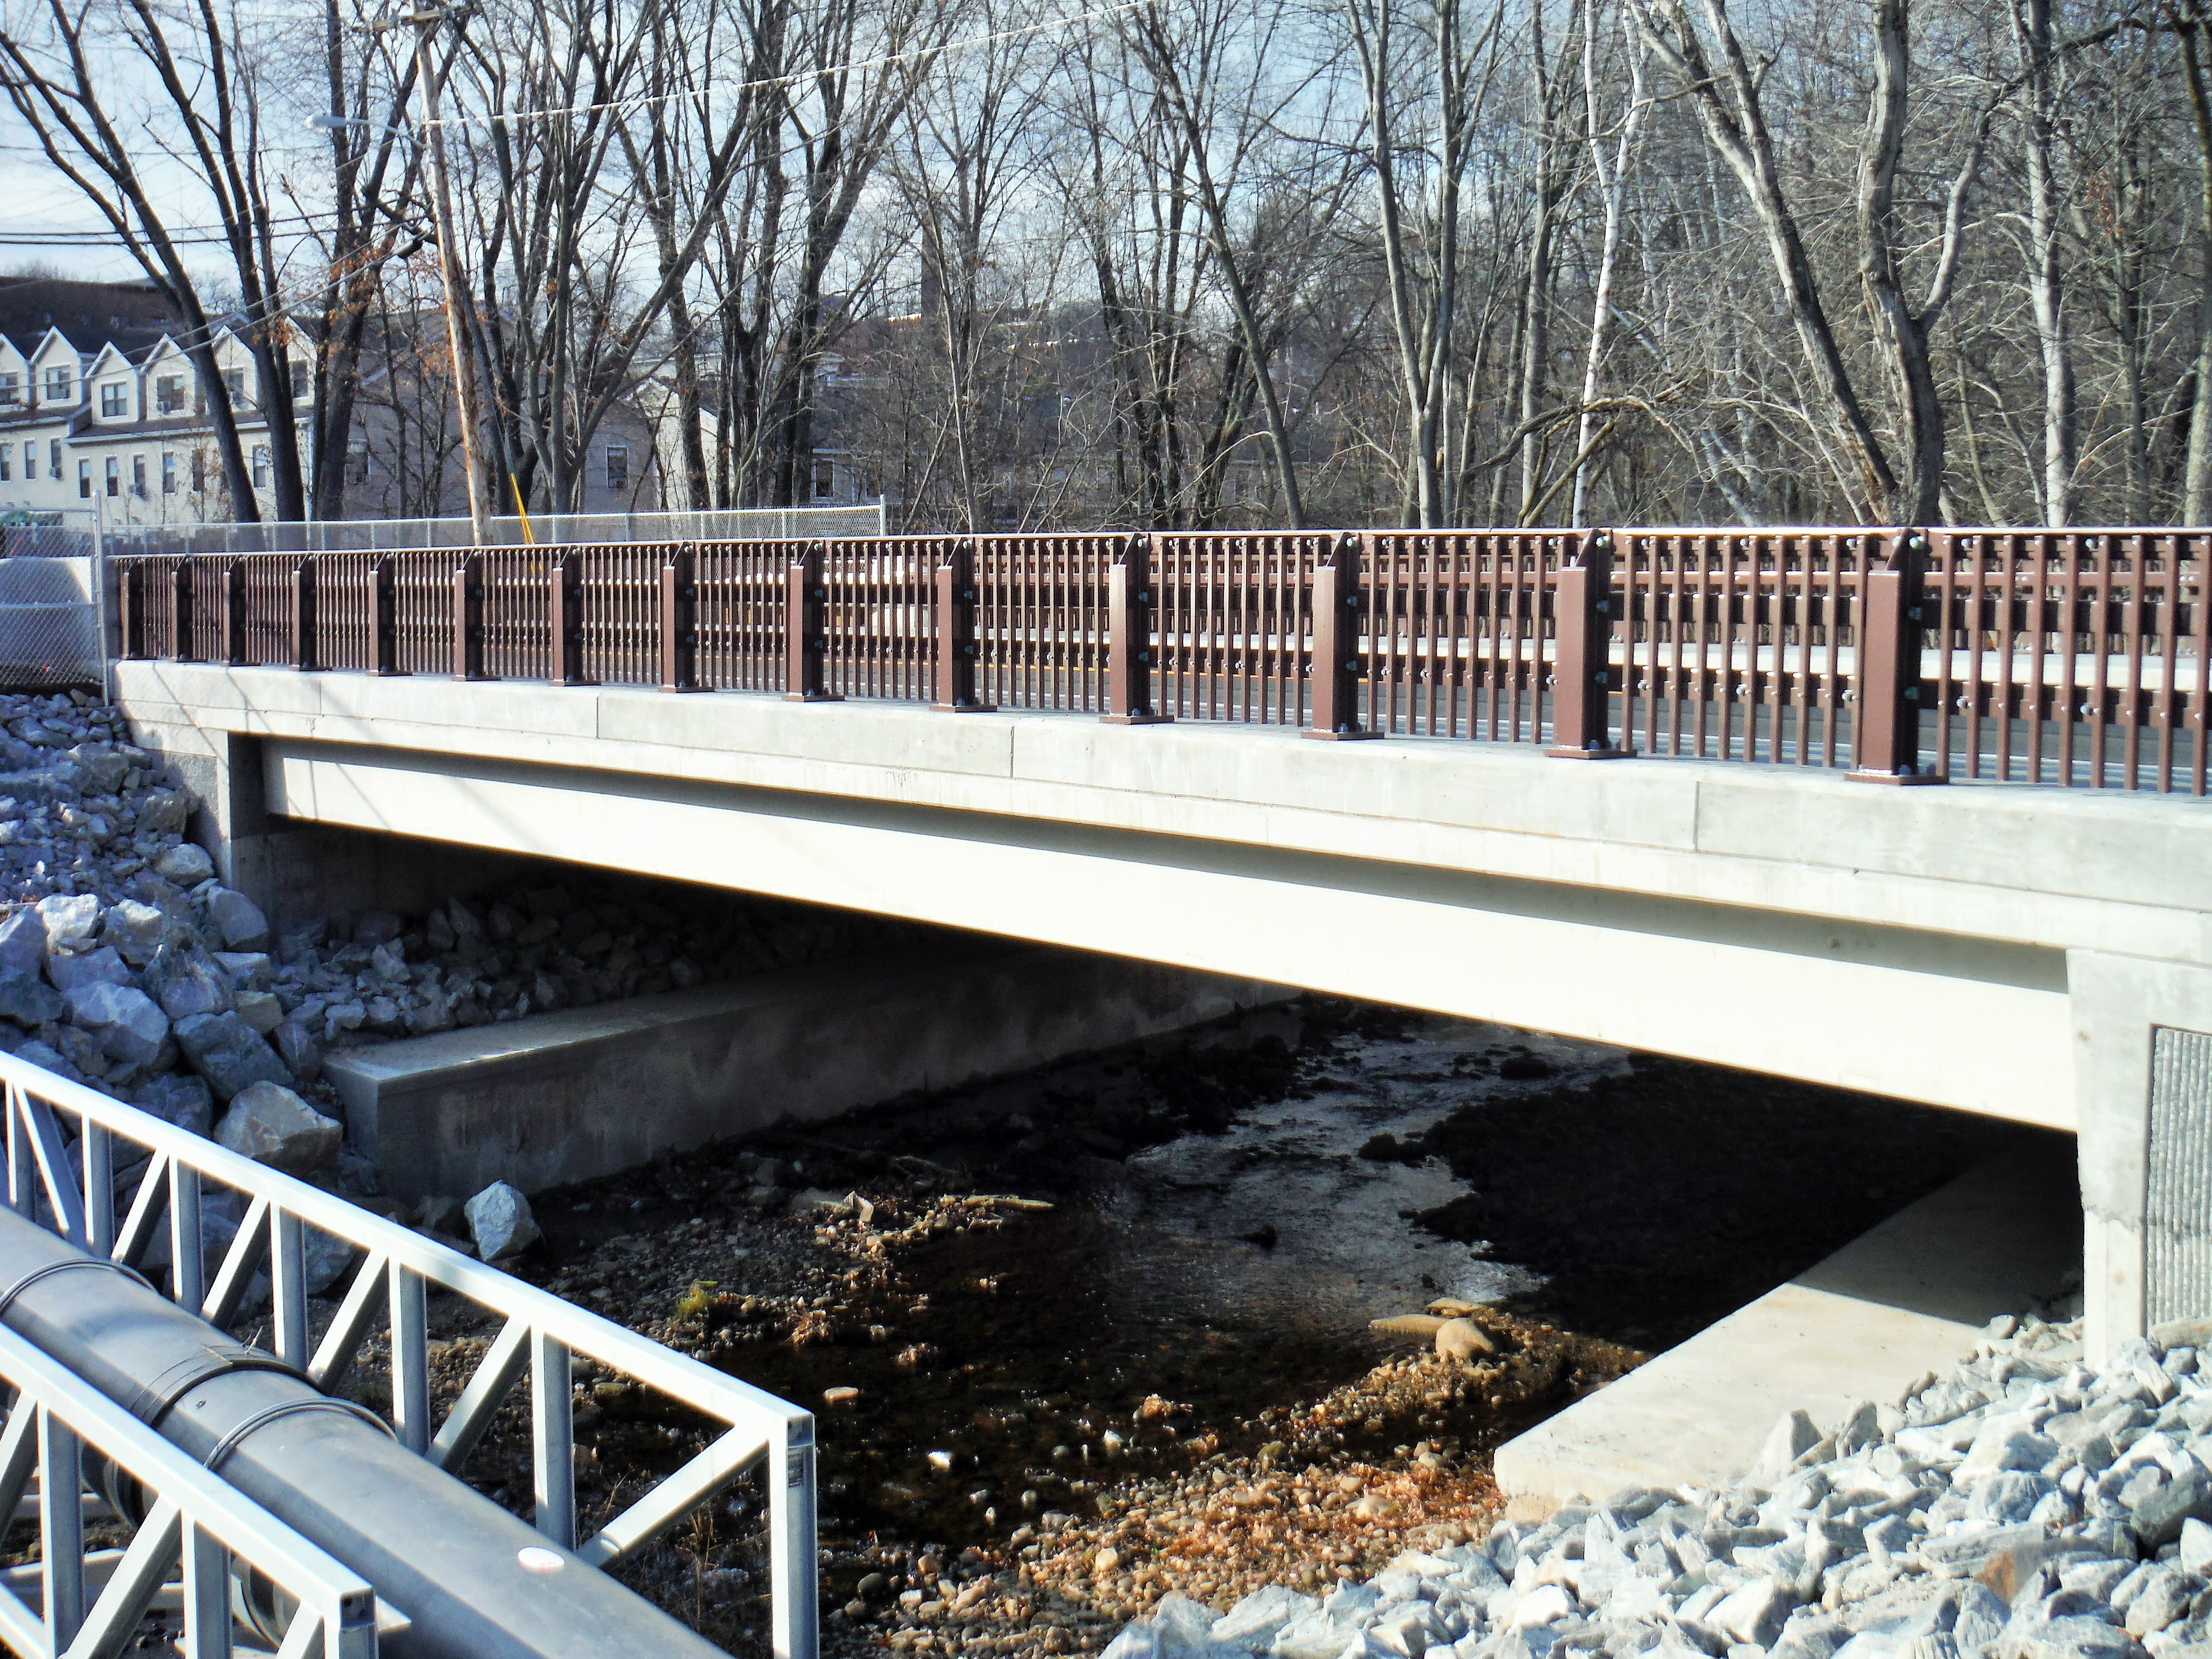 Monoosnoc Brook Bridge